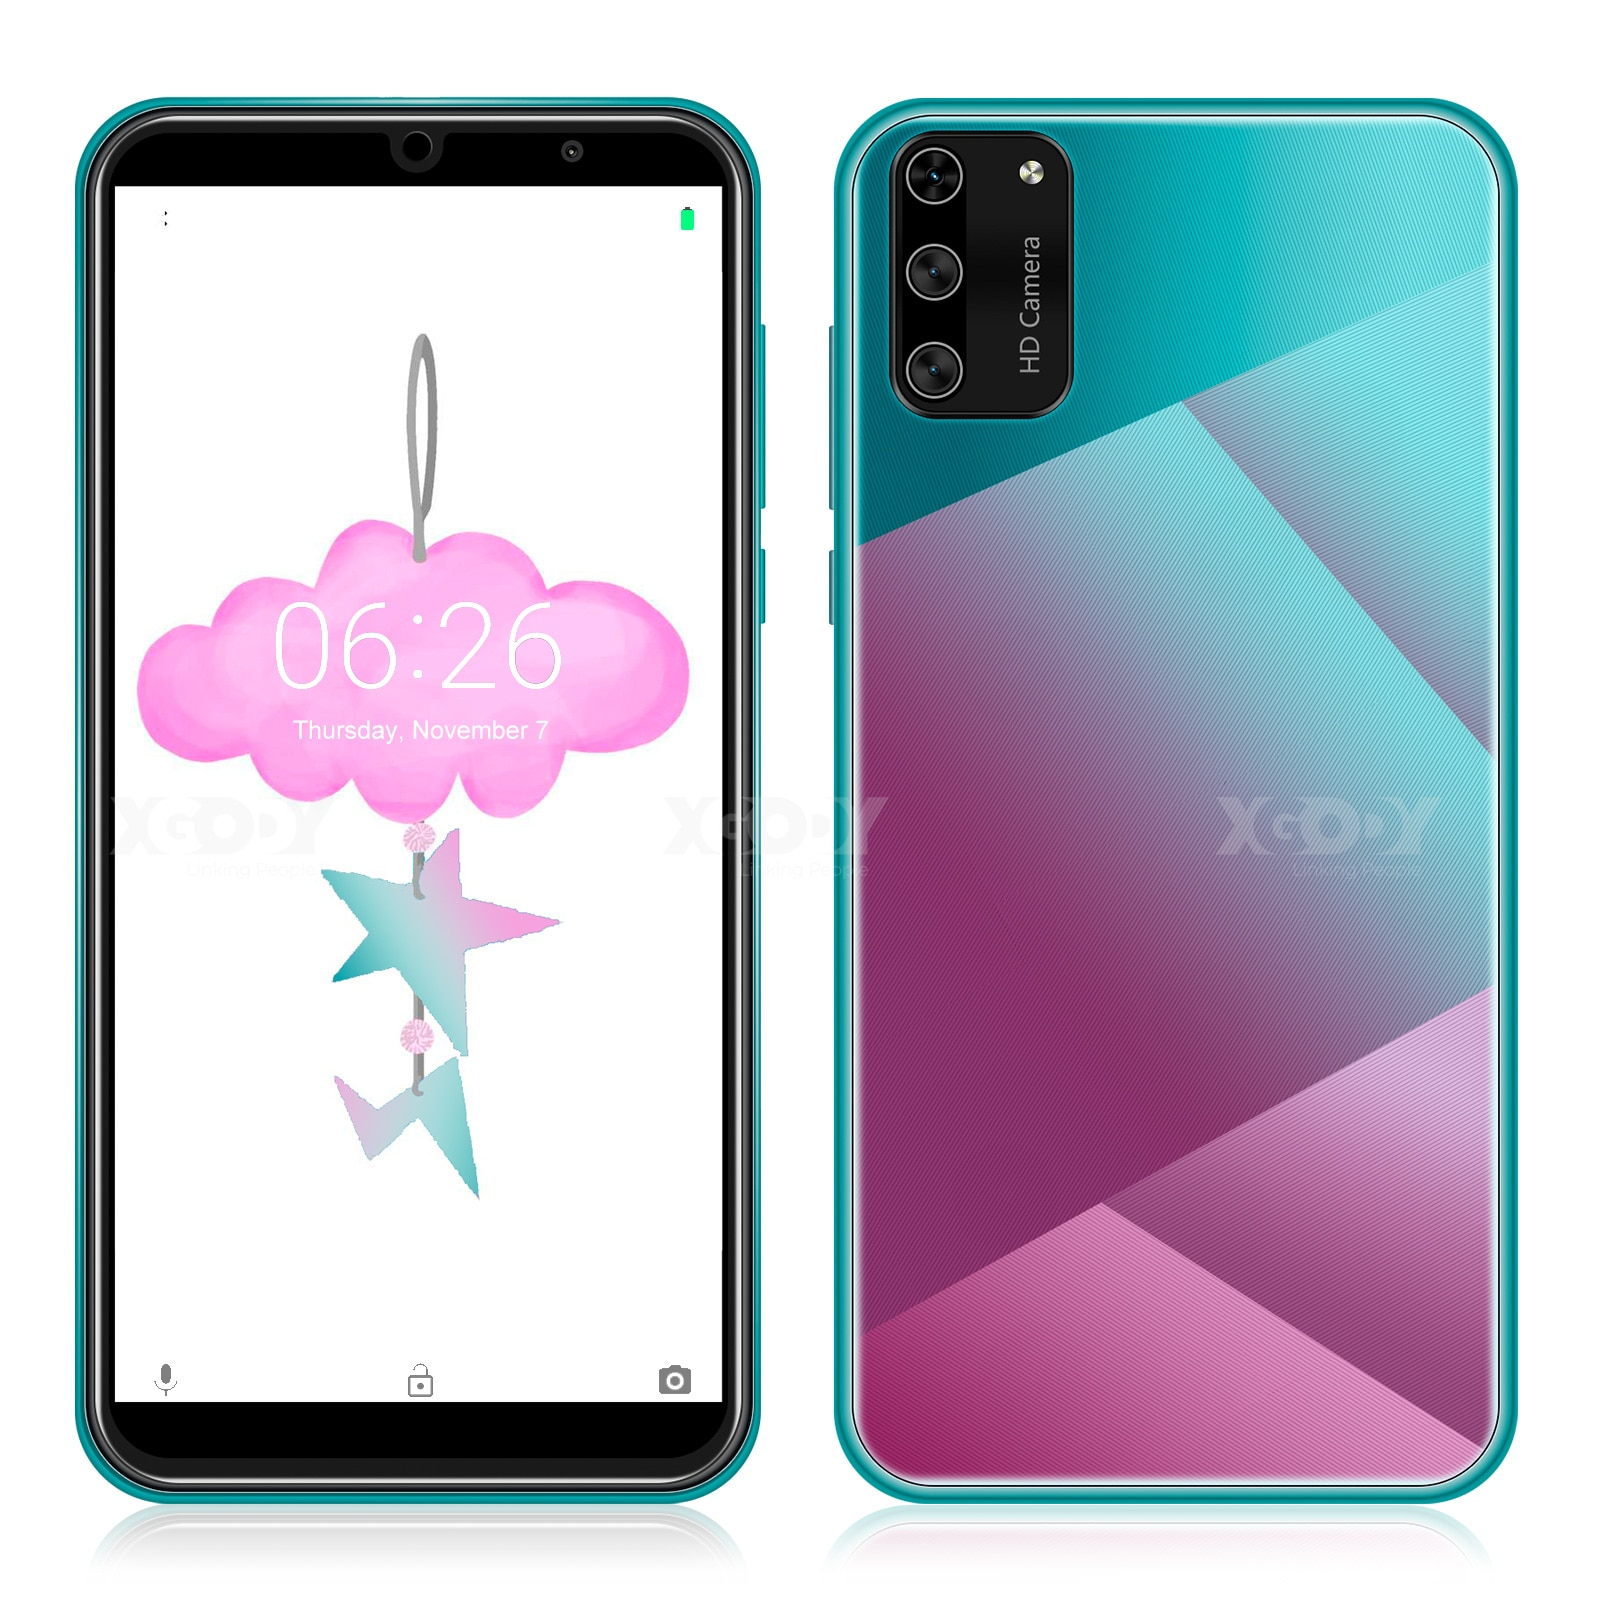 XGODY+S20+mini+3G+smartphone+1GB+RAM+4GB+ROM+t%C3%A9l%C3%A9phones+mobiles+Android+9.0+double+SIM+5.5+%27%27t%C3%A9l%C3%A9phone+portable+5MP+cam%C3%A9ra+WiFi+t%C3%A9l%C3%A9phone+cellulaire